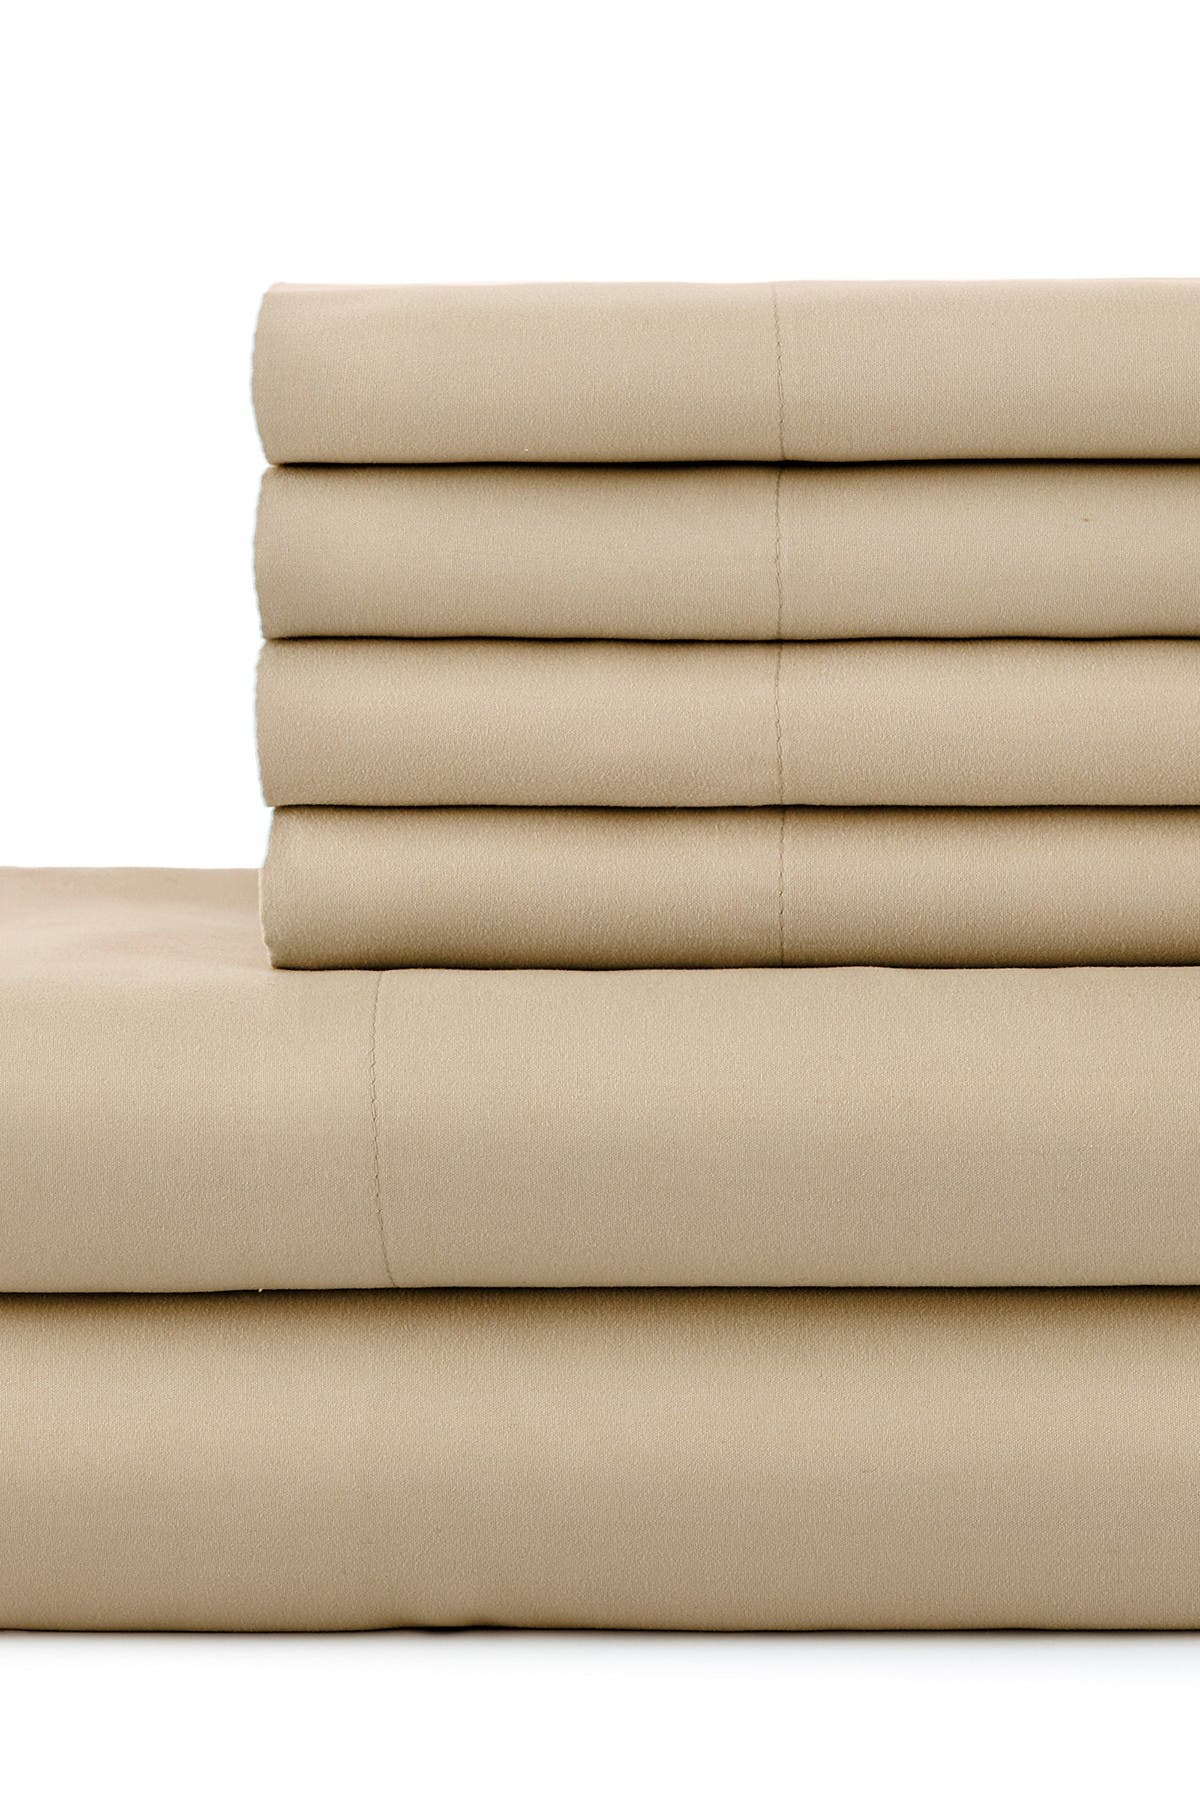 Image of SOUTHSHORE FINE LINENS Full   Sized Southshore Essentials Double Brushed 100 GSM Sheet Set - Warm Sand